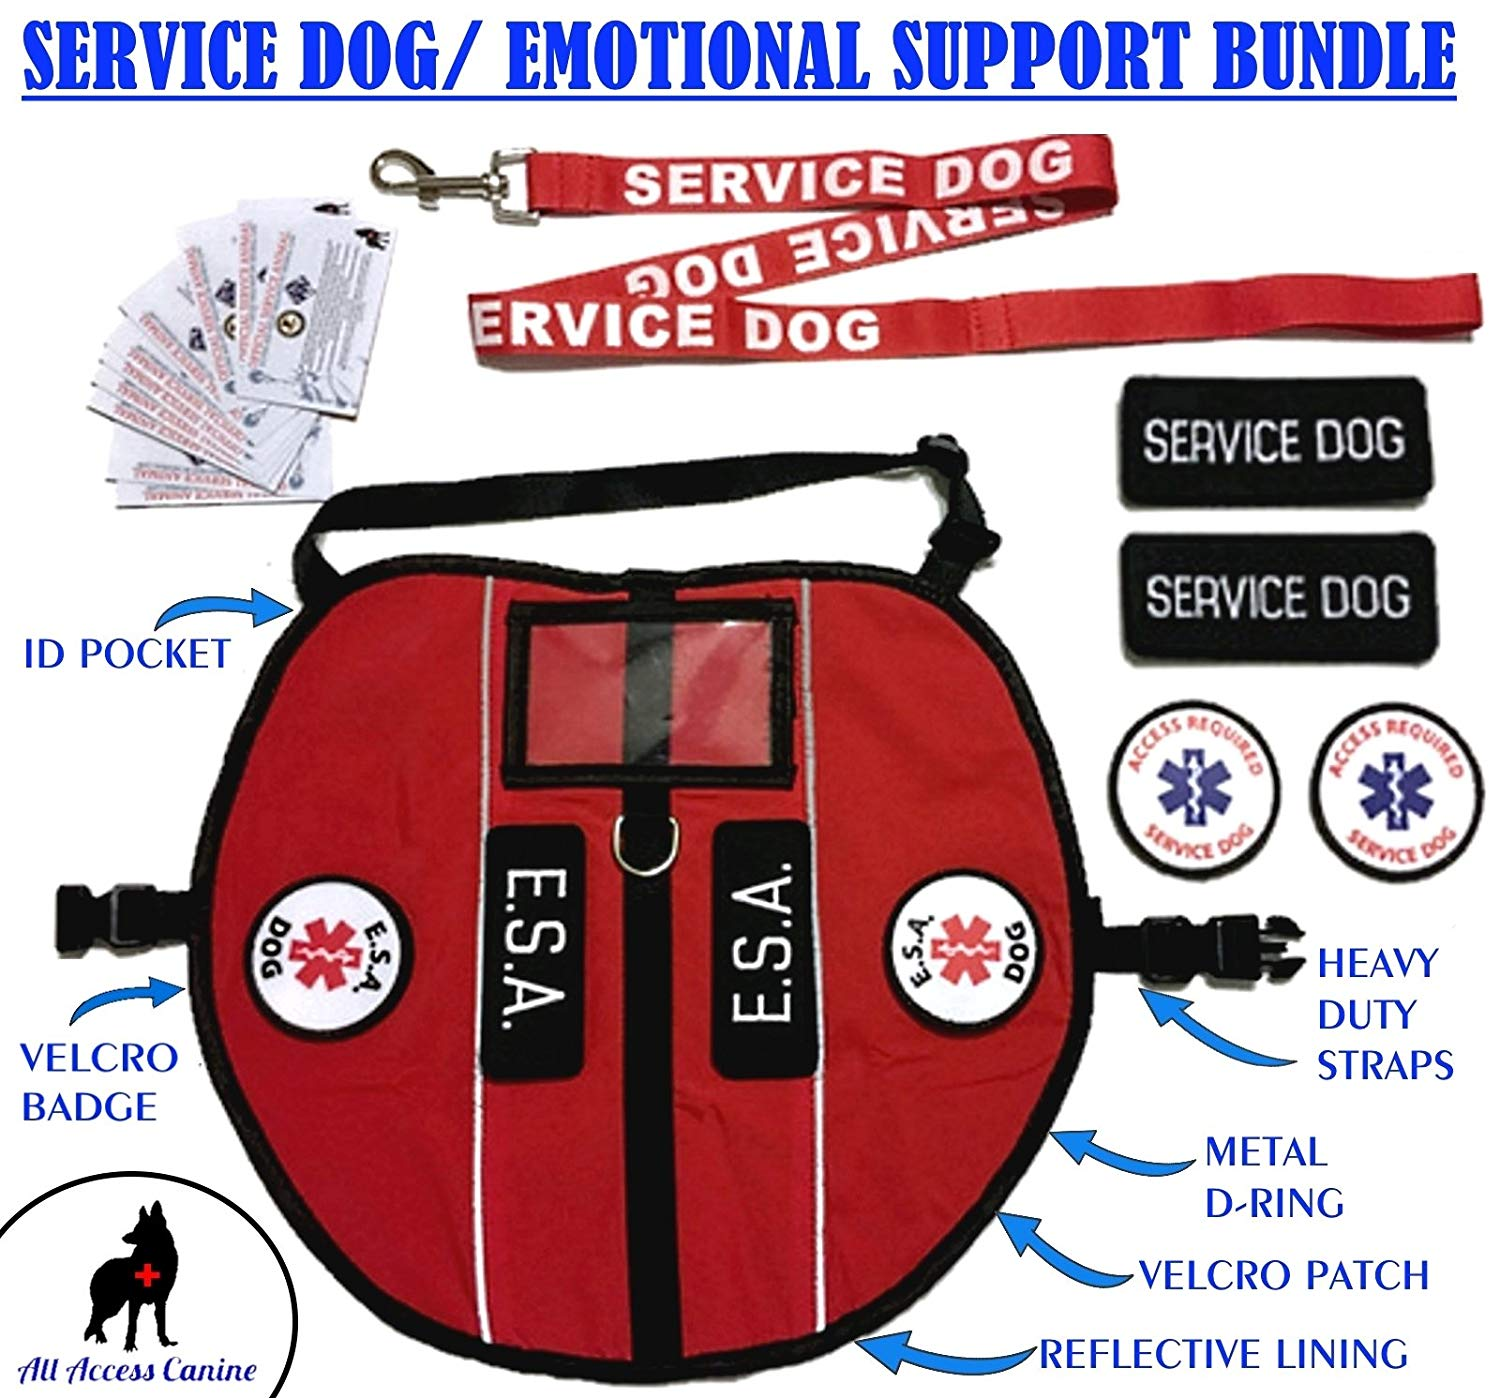 ALL ACCESS CANINE Emotional Support Animal ESA Dog & Service Dog Vest CUSTOM Reflective Harness PACKAGE (M,L,XL)